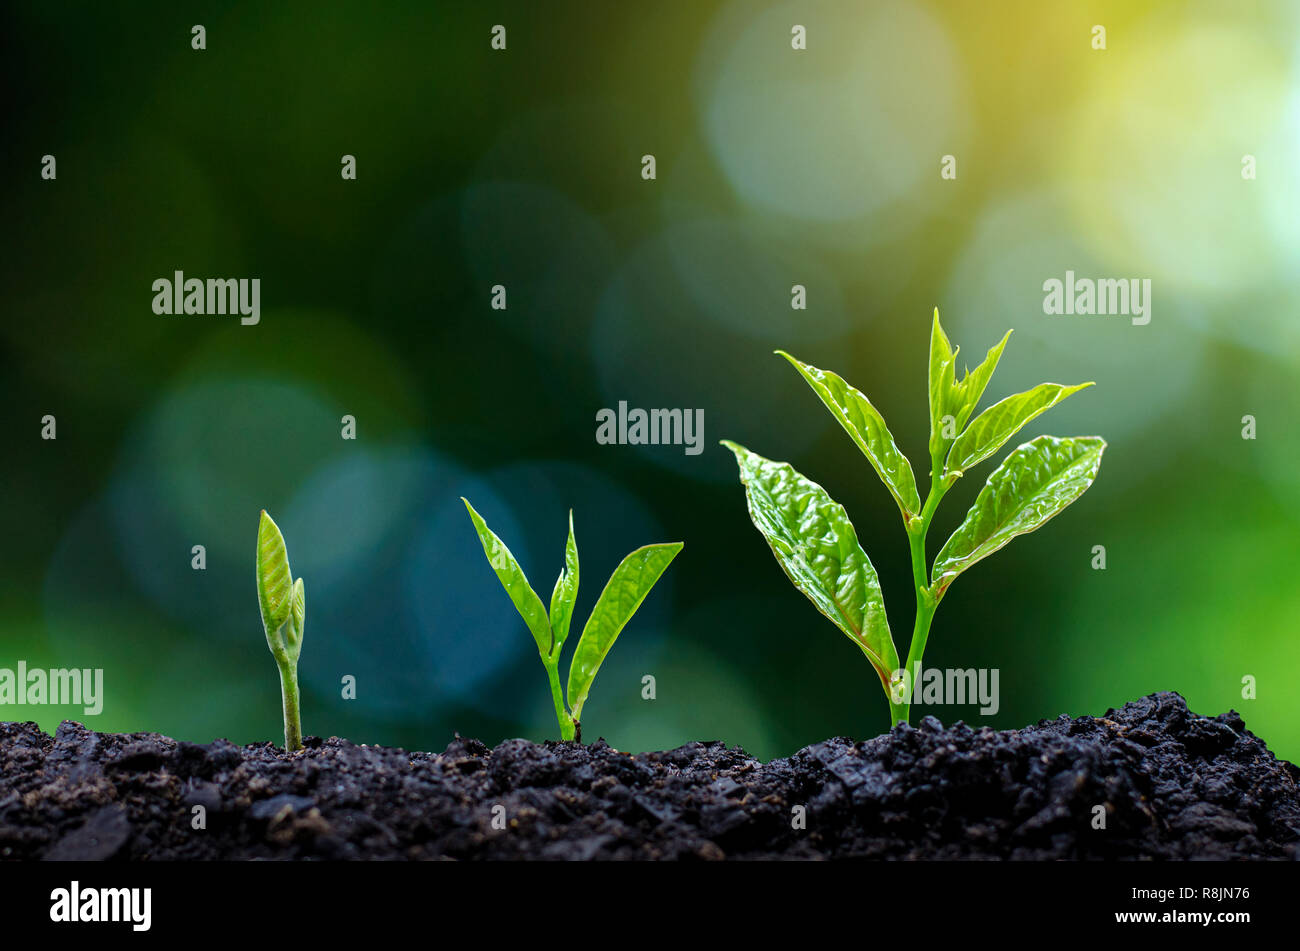 Development of seedling growth Planting seedlings young plant in the morning light on nature background Stock Photo